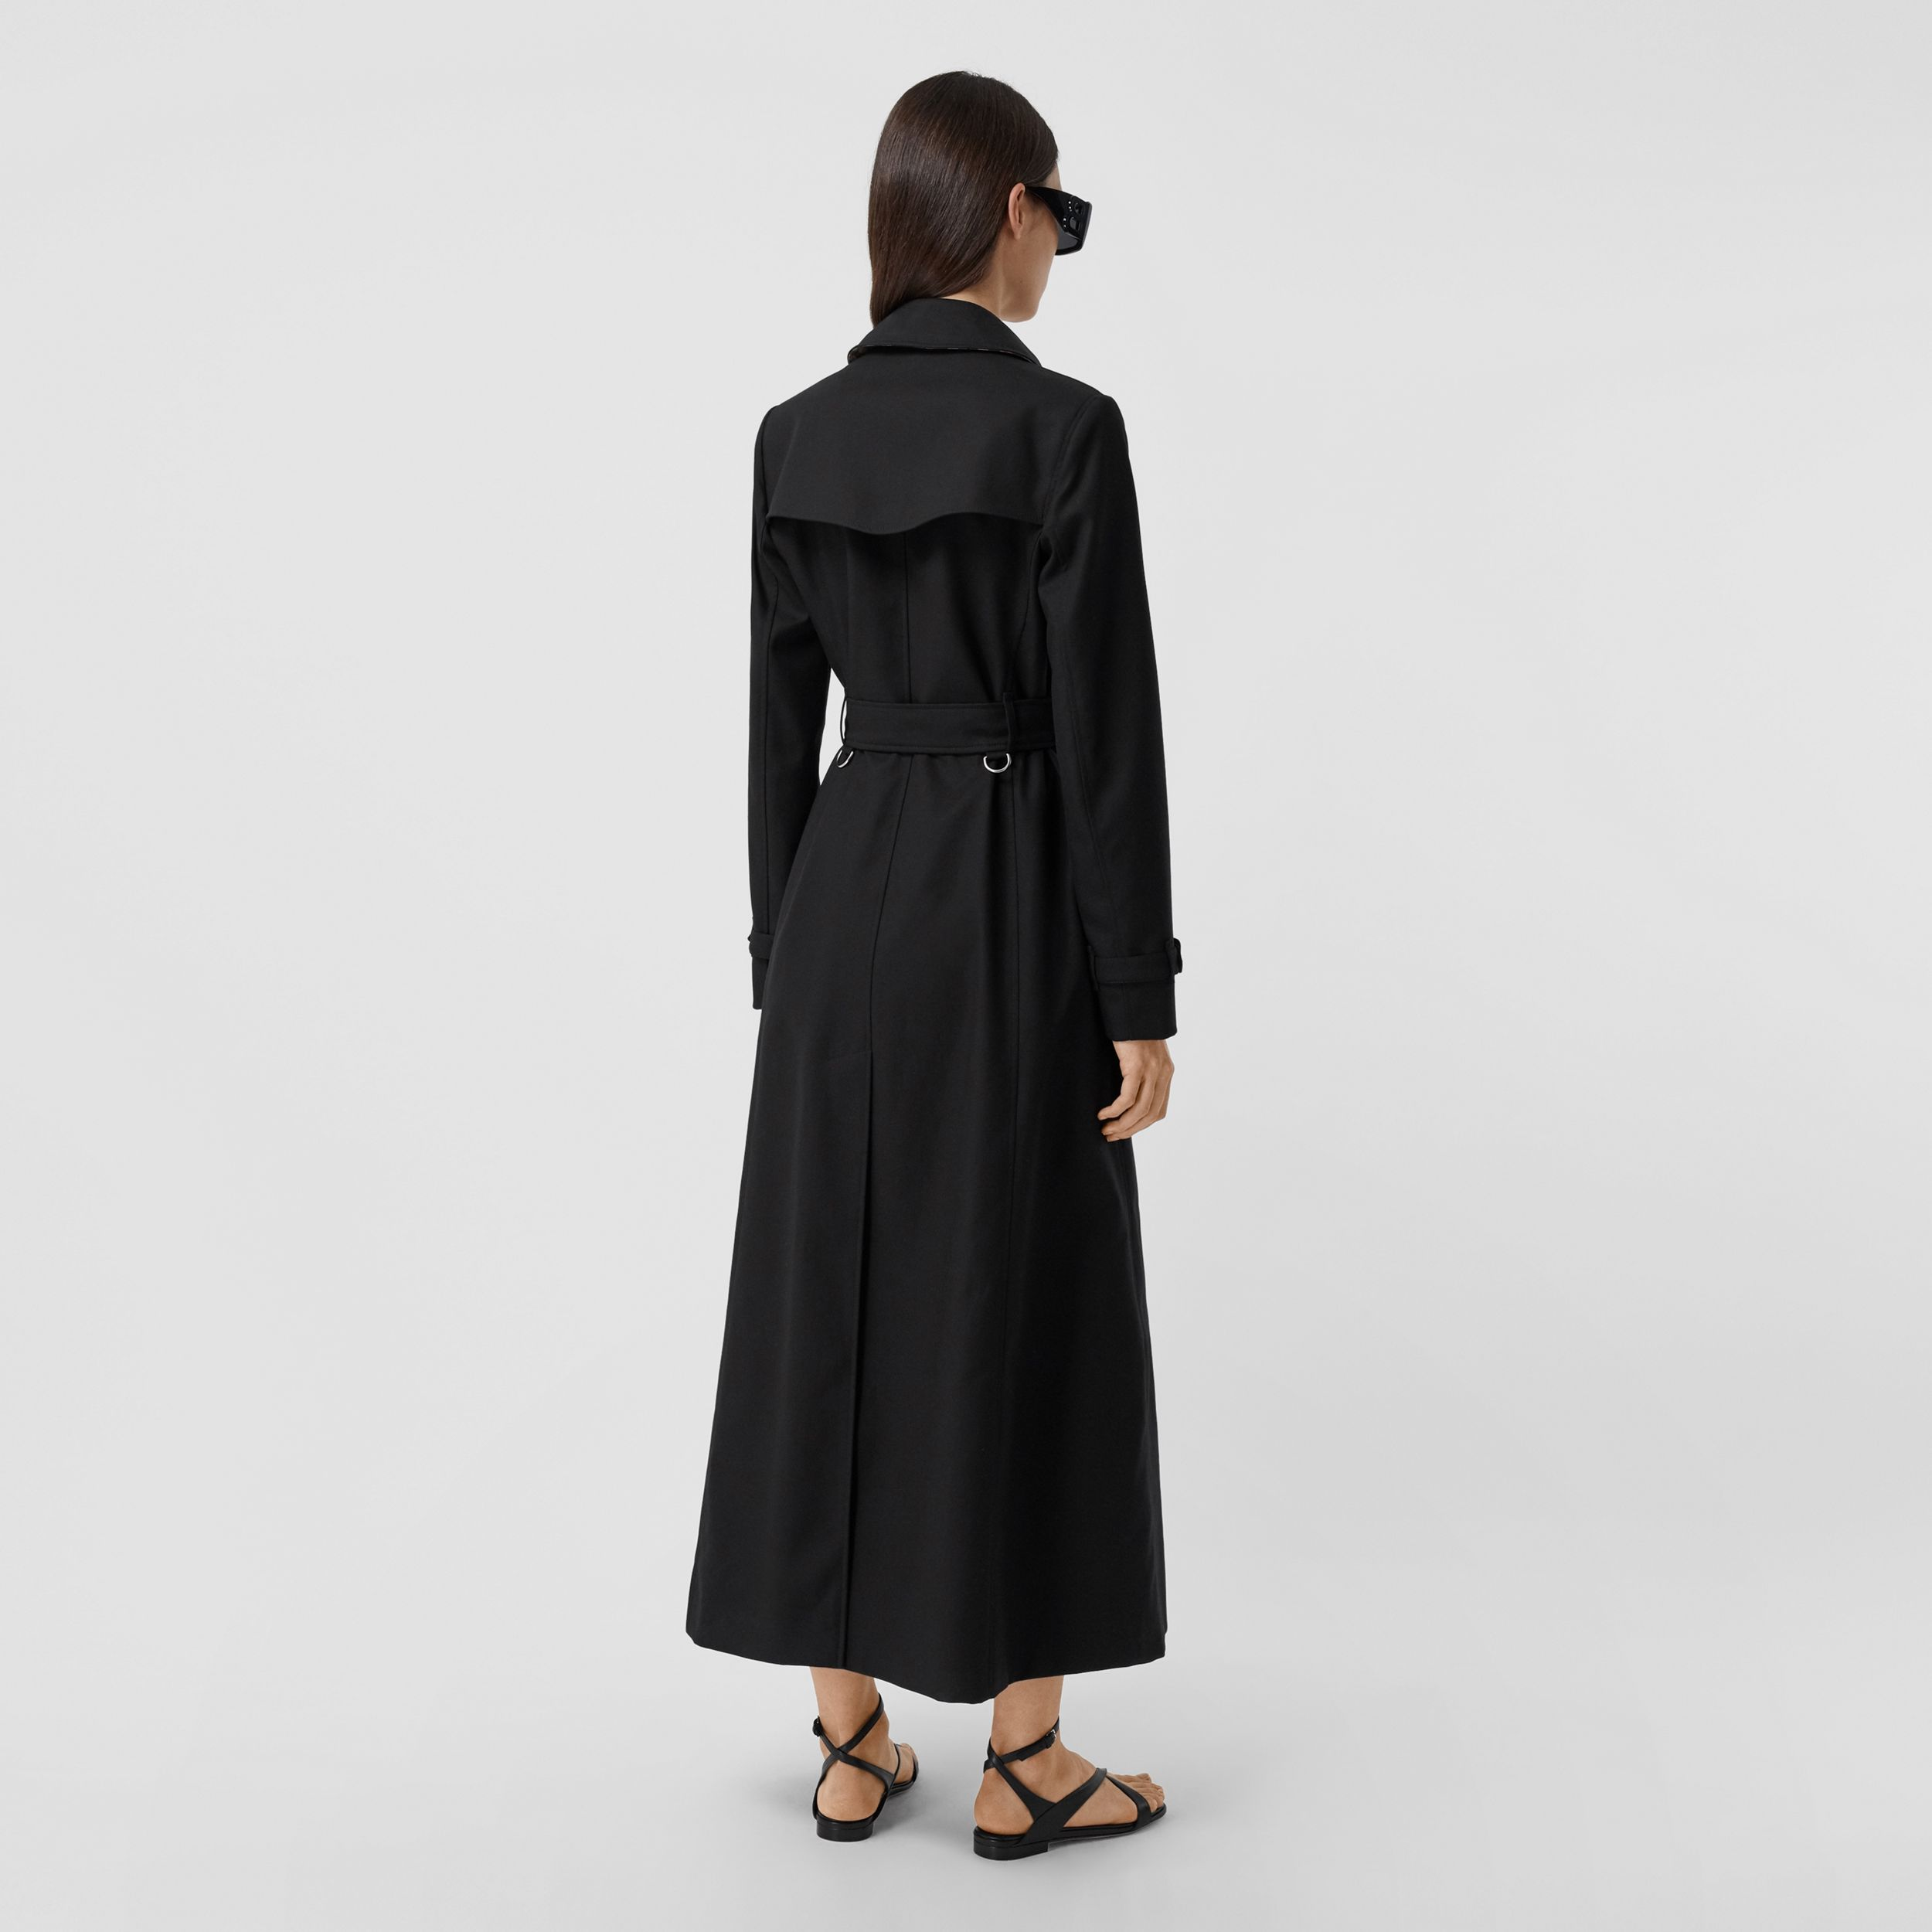 Pocket Detail Cotton Gabardine Trench Coat in Black - Women | Burberry Australia - 3